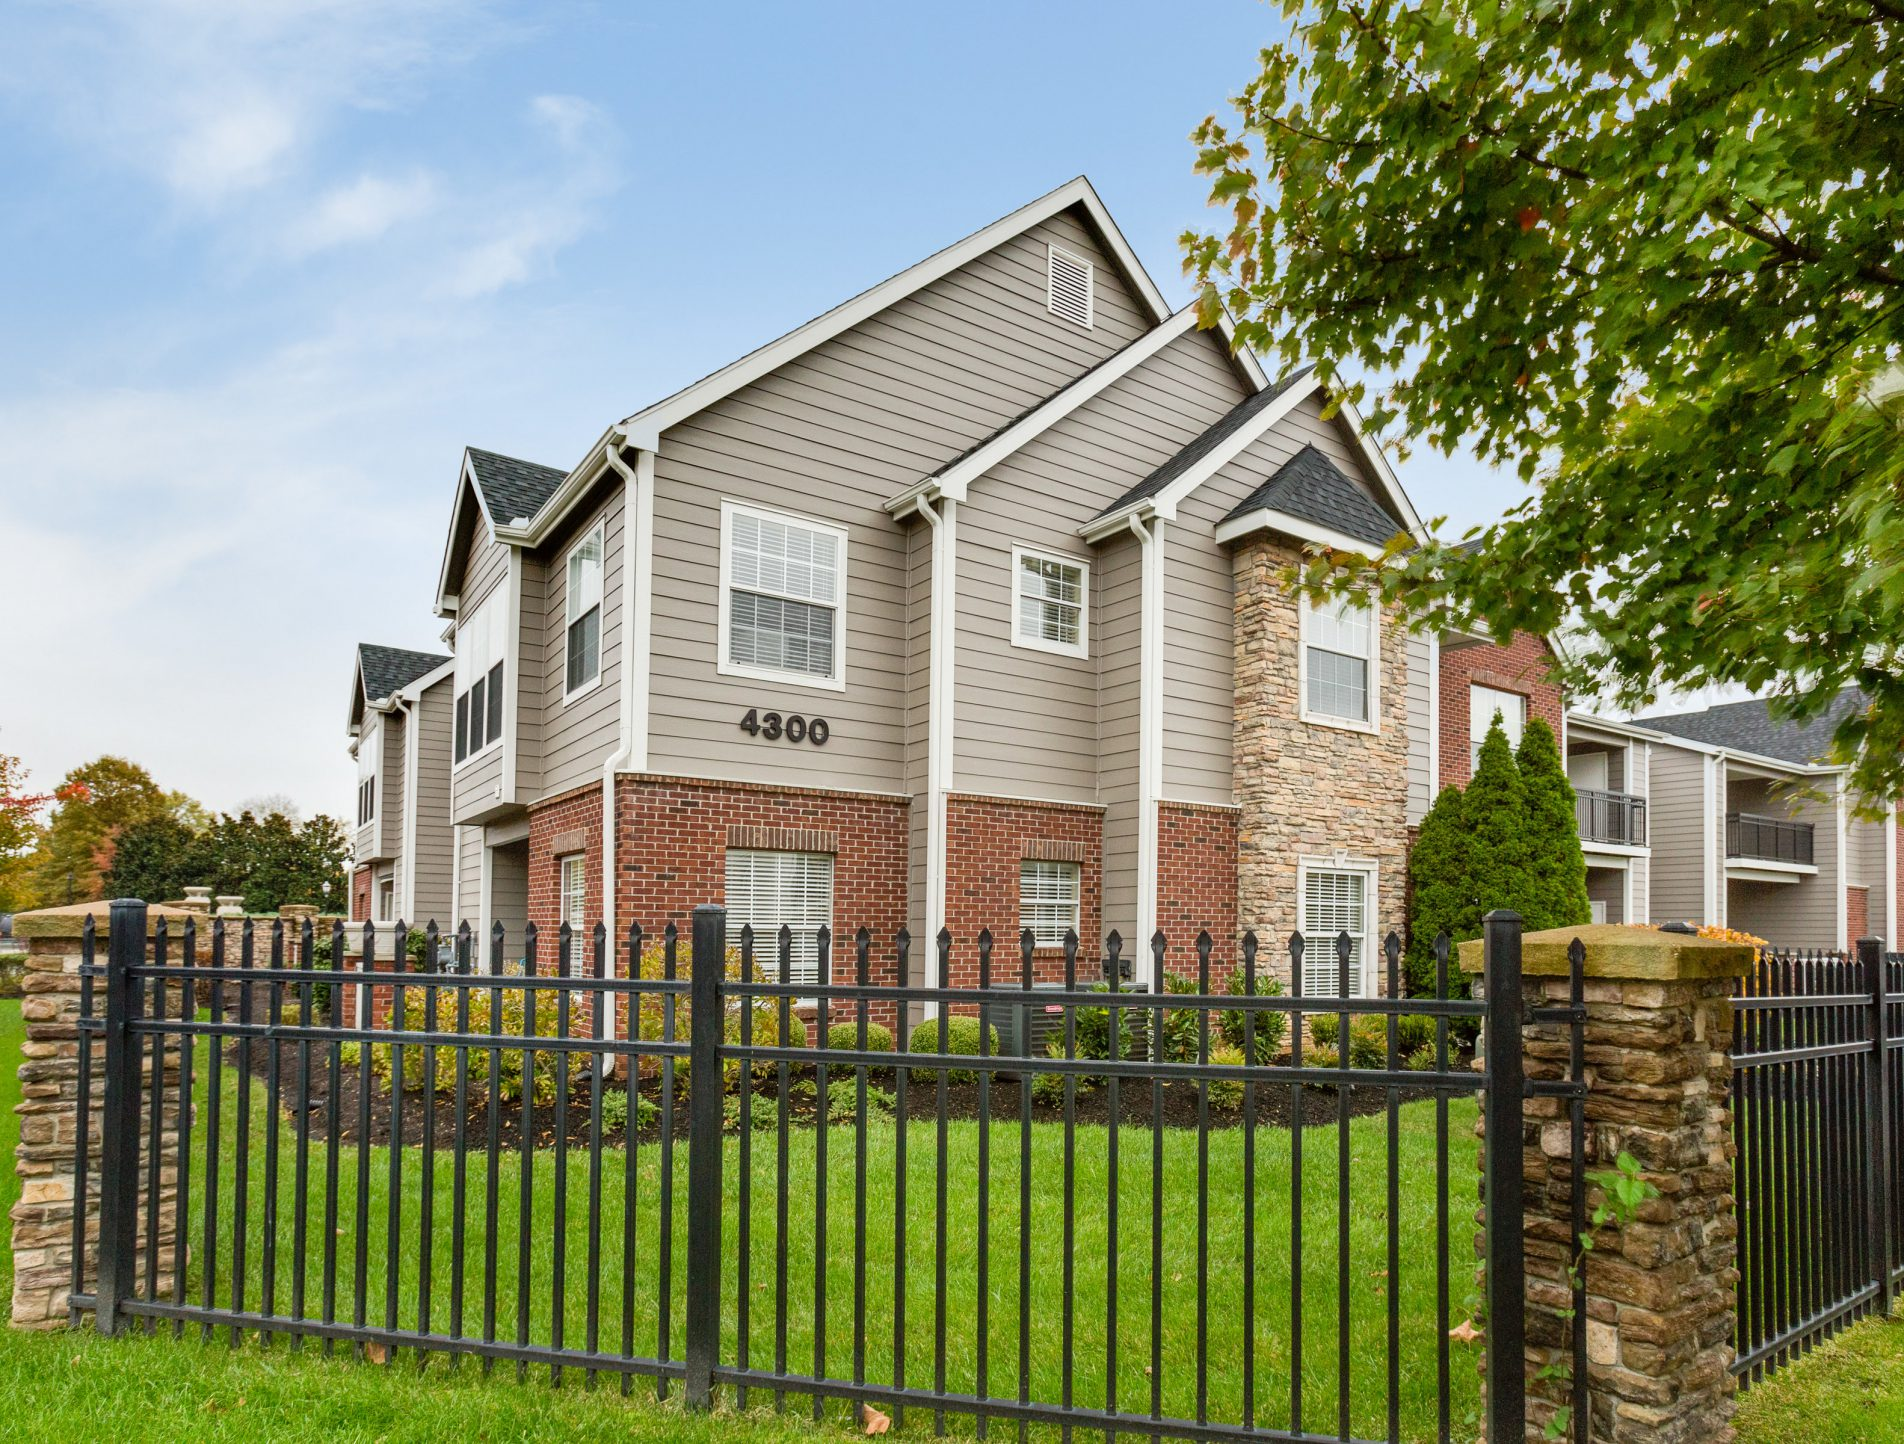 ky farm apartments watch clearwaterfarm apts louisville apartment com clearwater for bedroom rent